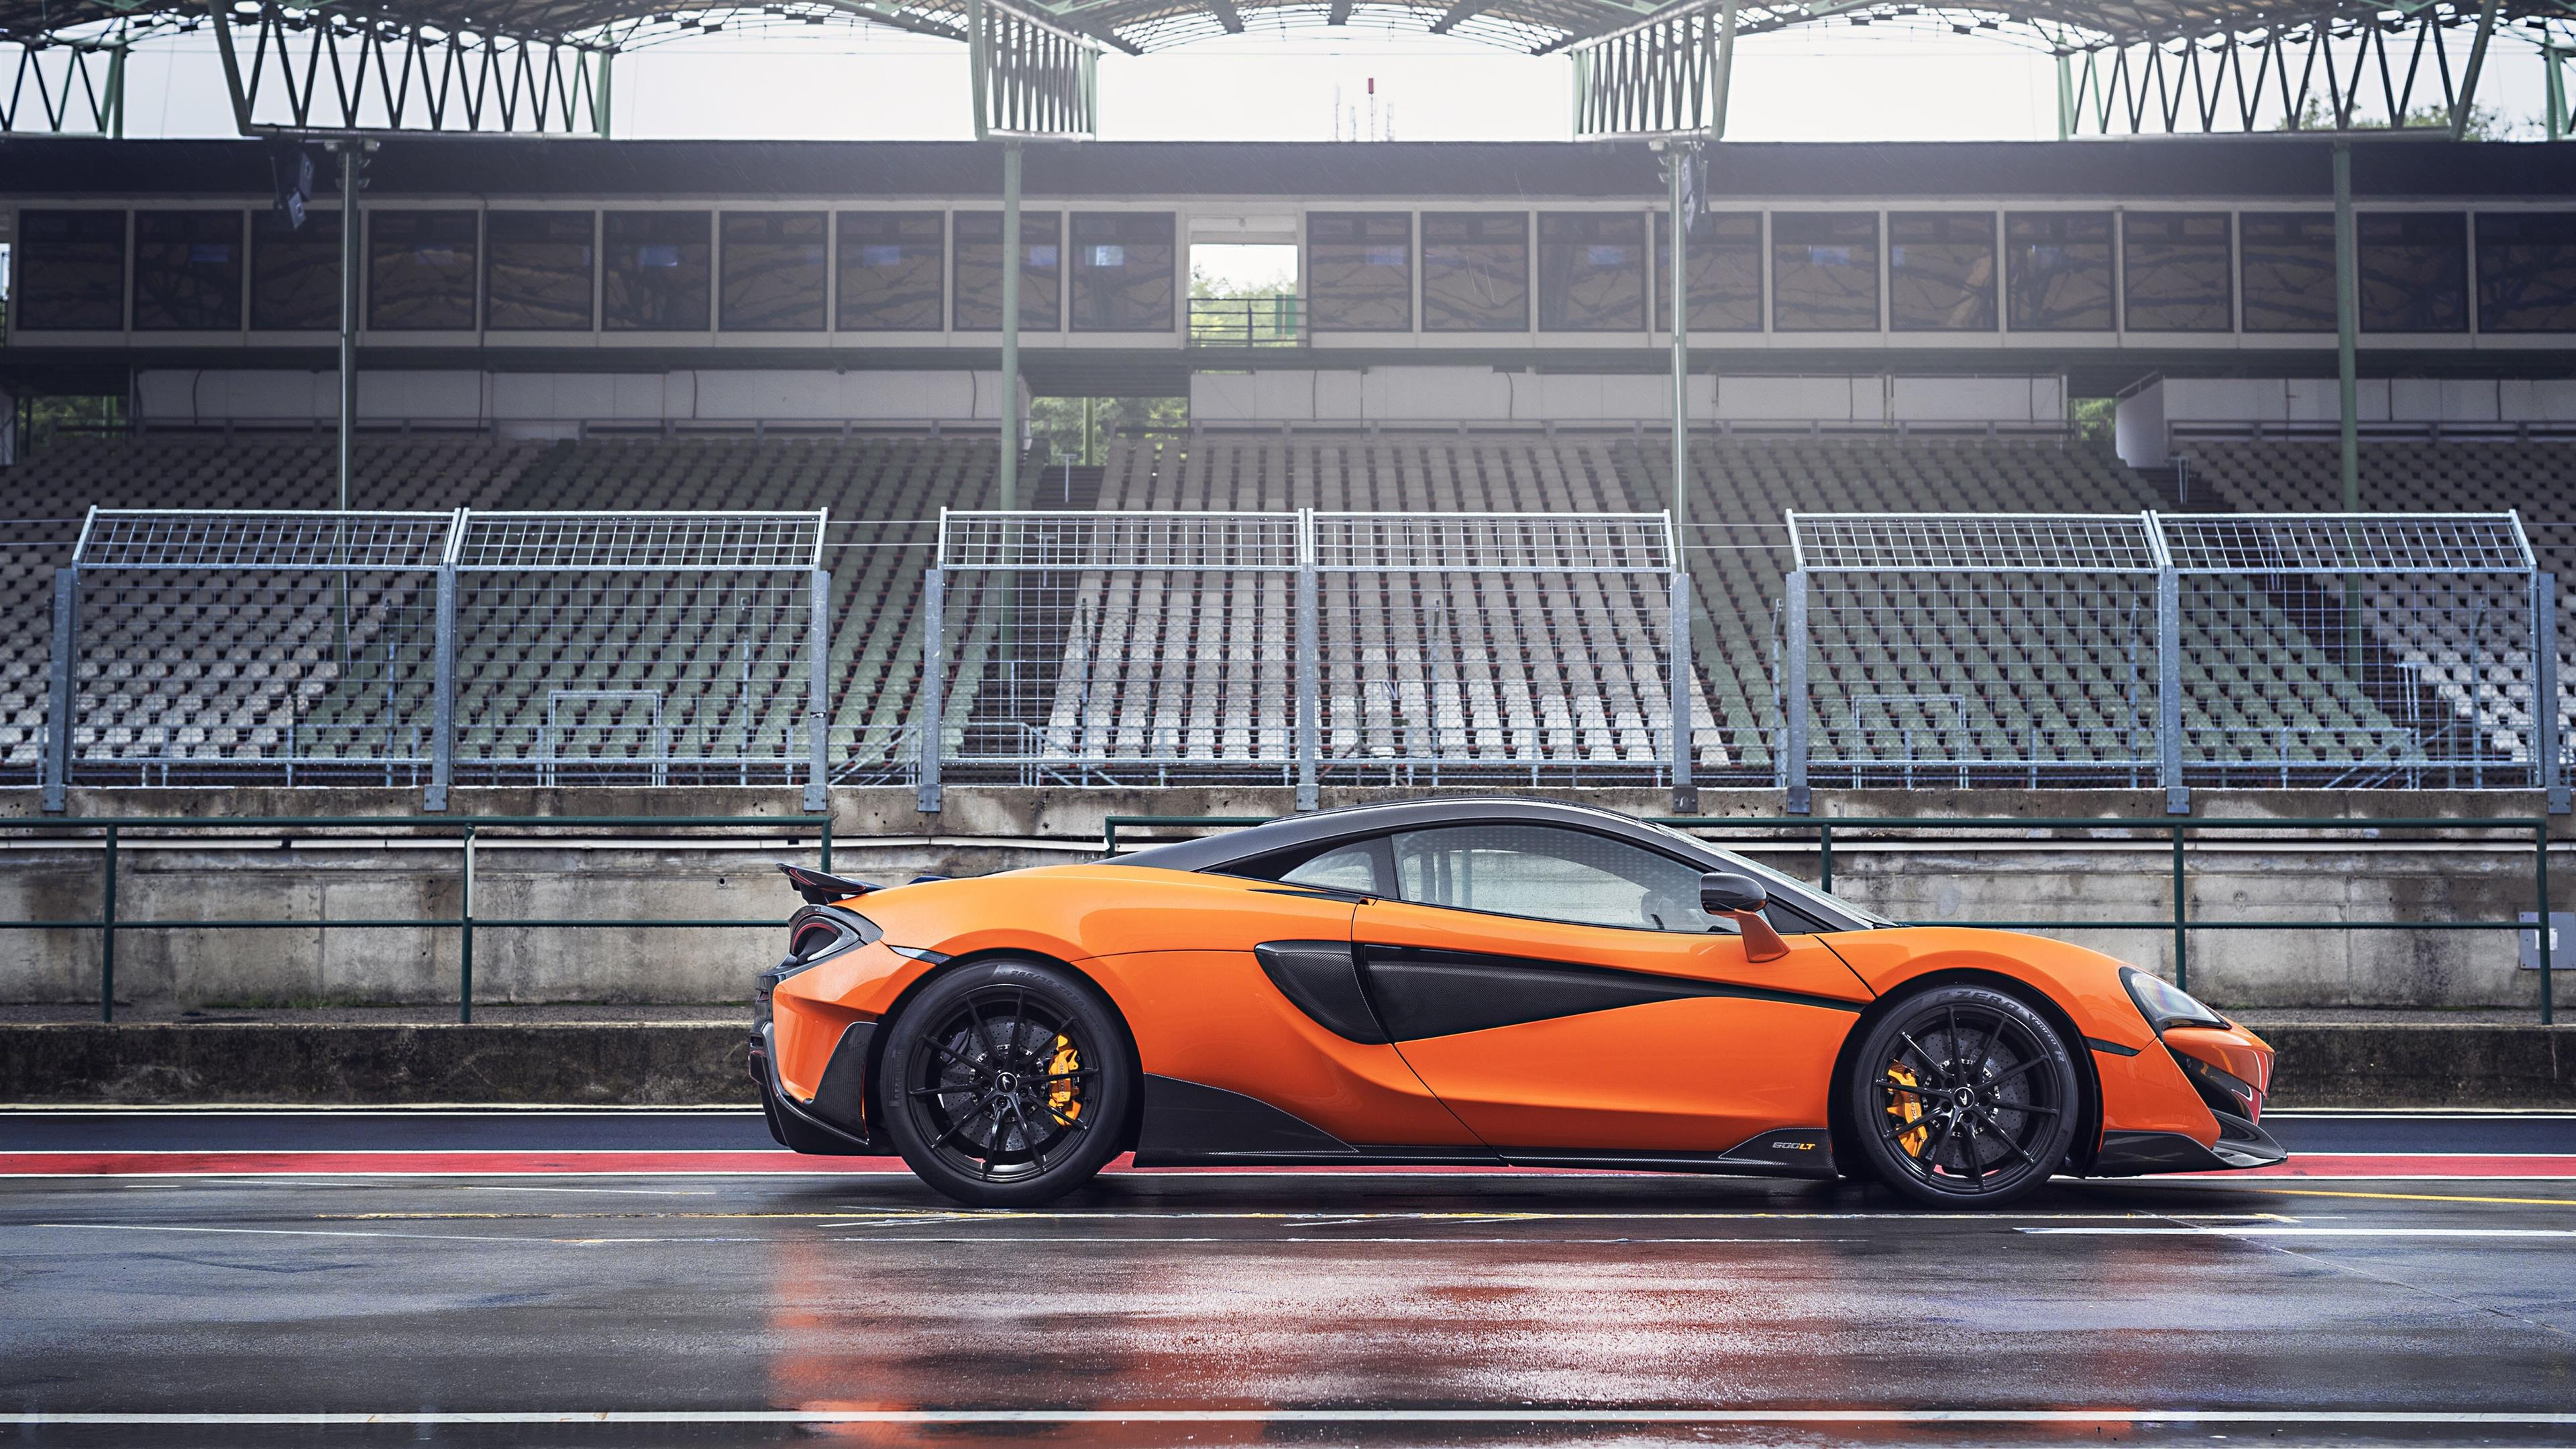 3840x2160 5K Image of 2019 McLaren 600LT Spider Car